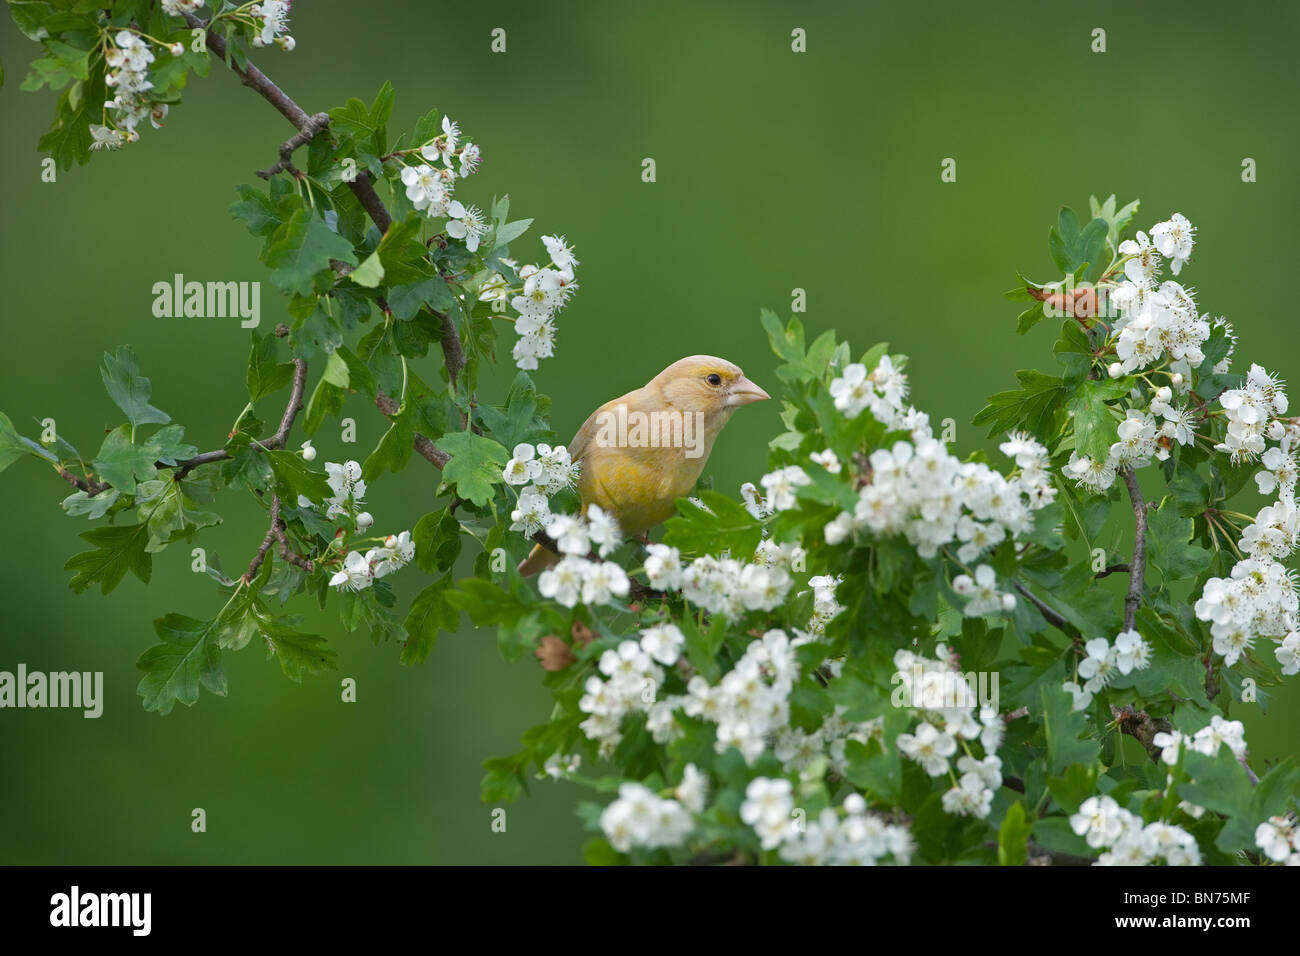 Green Finch Carduelis chloris on Spring Blossom abnormal variation - Stock Image